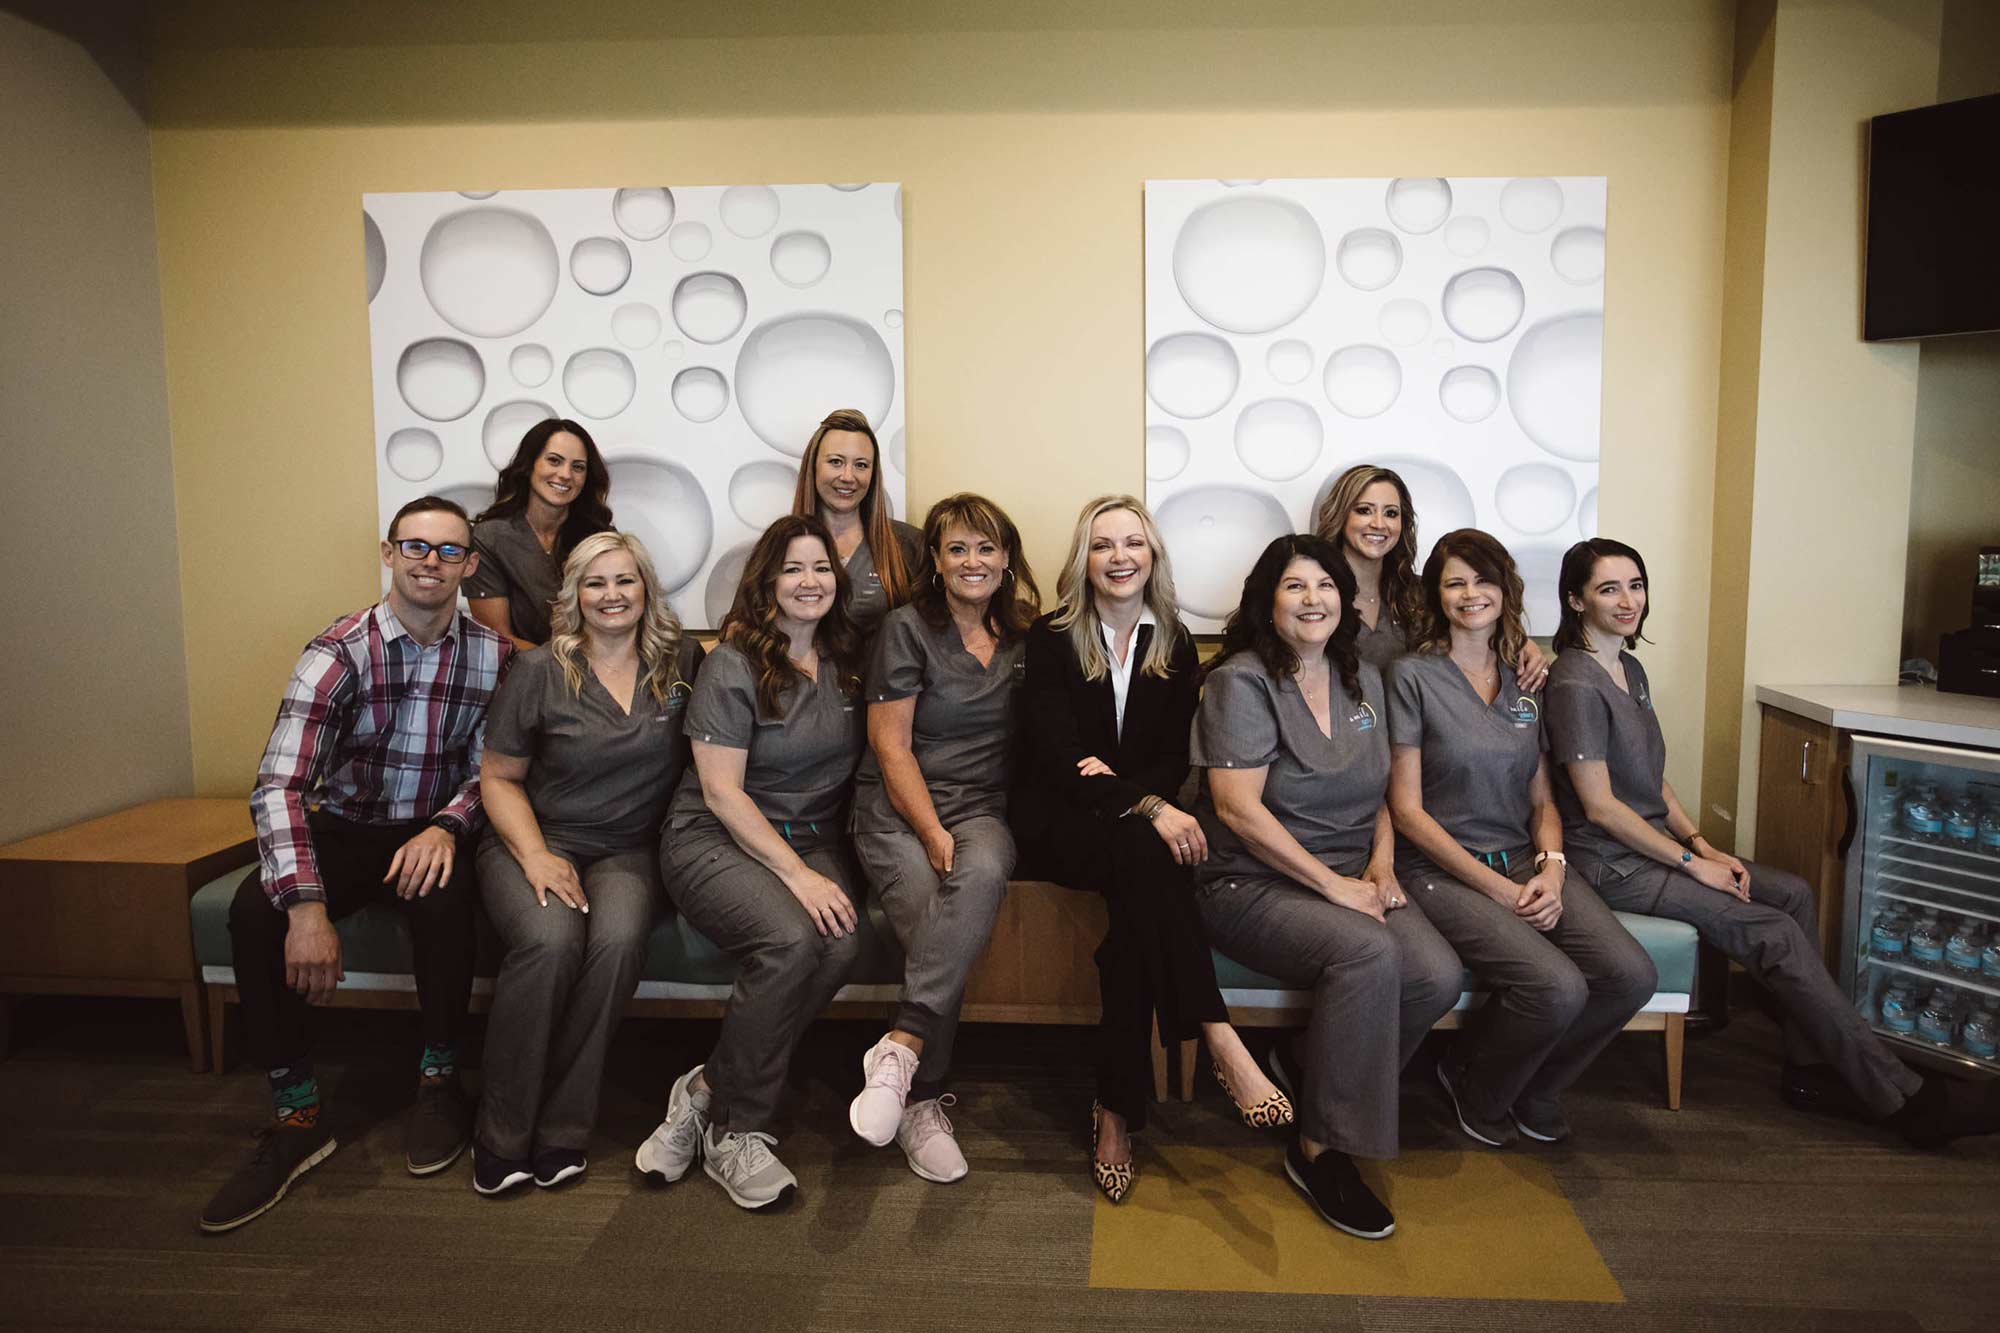 A photo of the Smile Gallery Pediatric Dentistry team